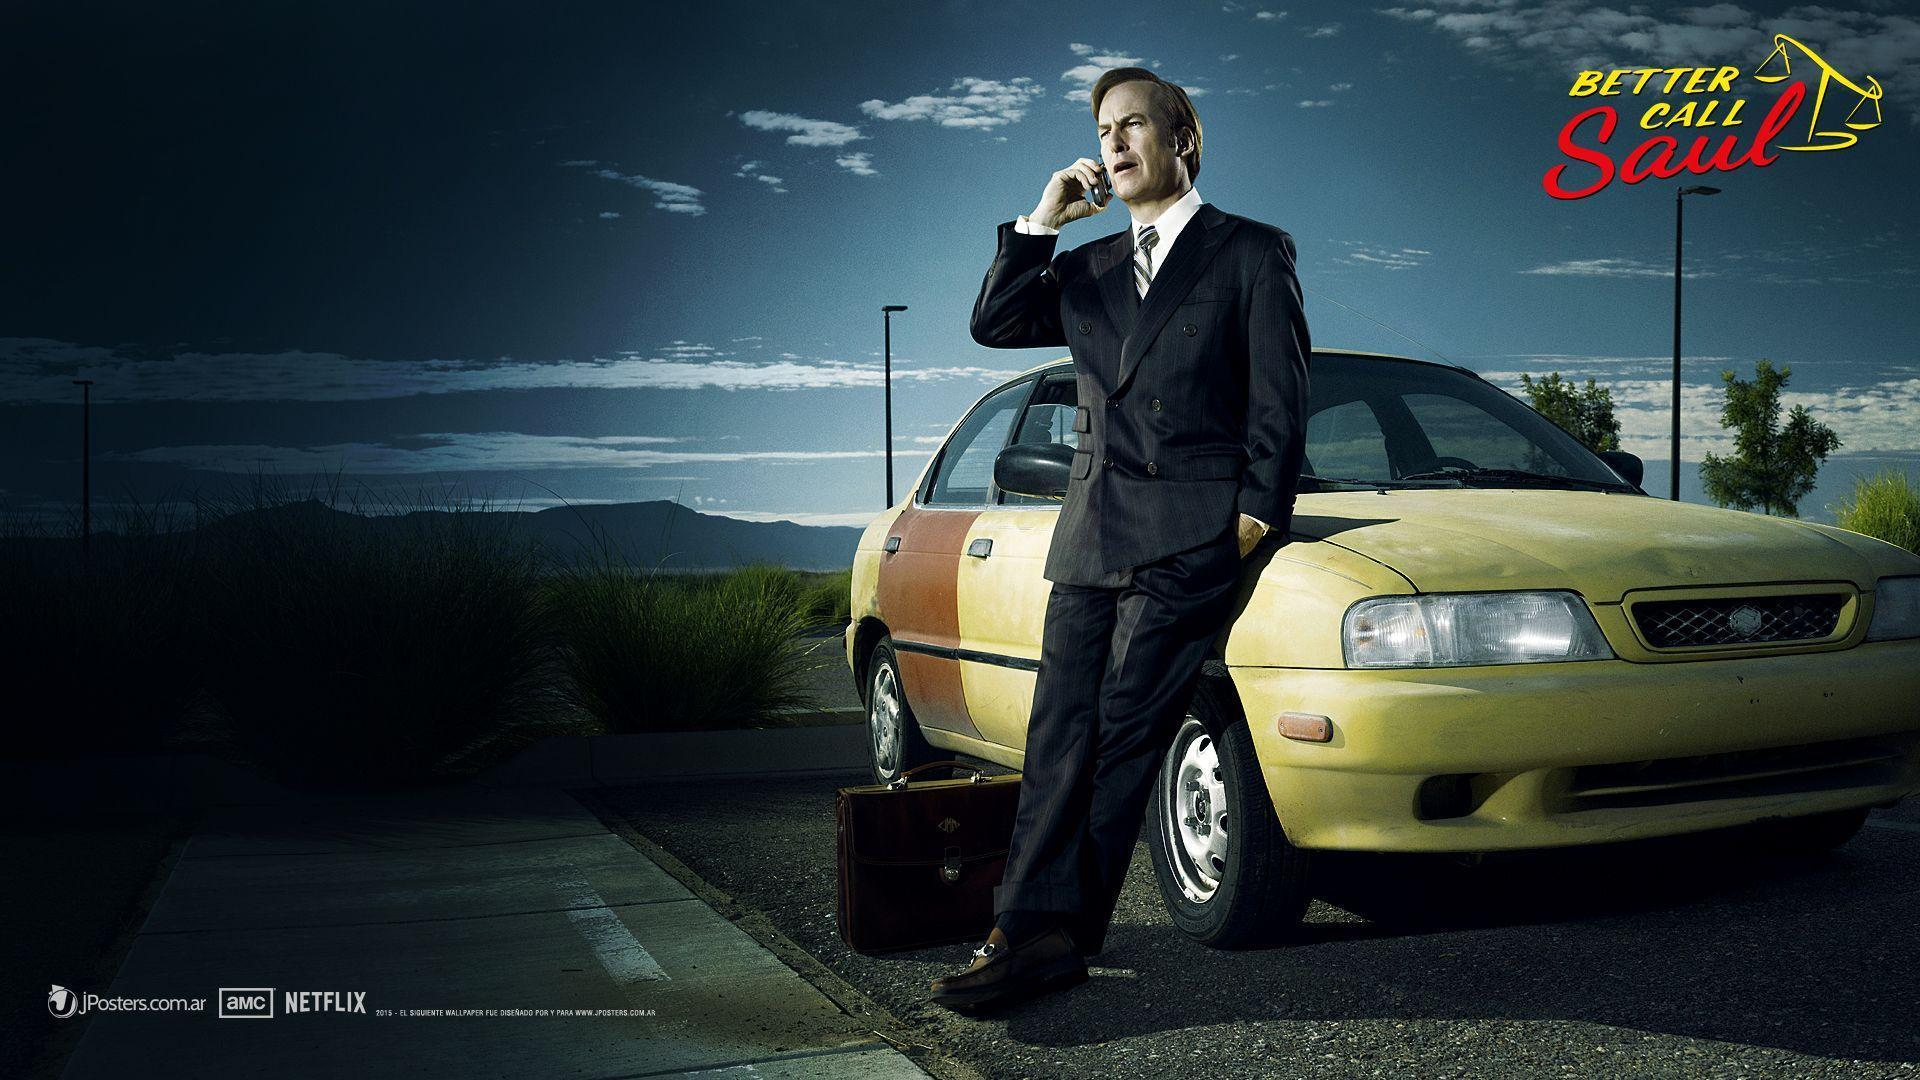 Better Call Saul Wallpapers Wallpaper Cave